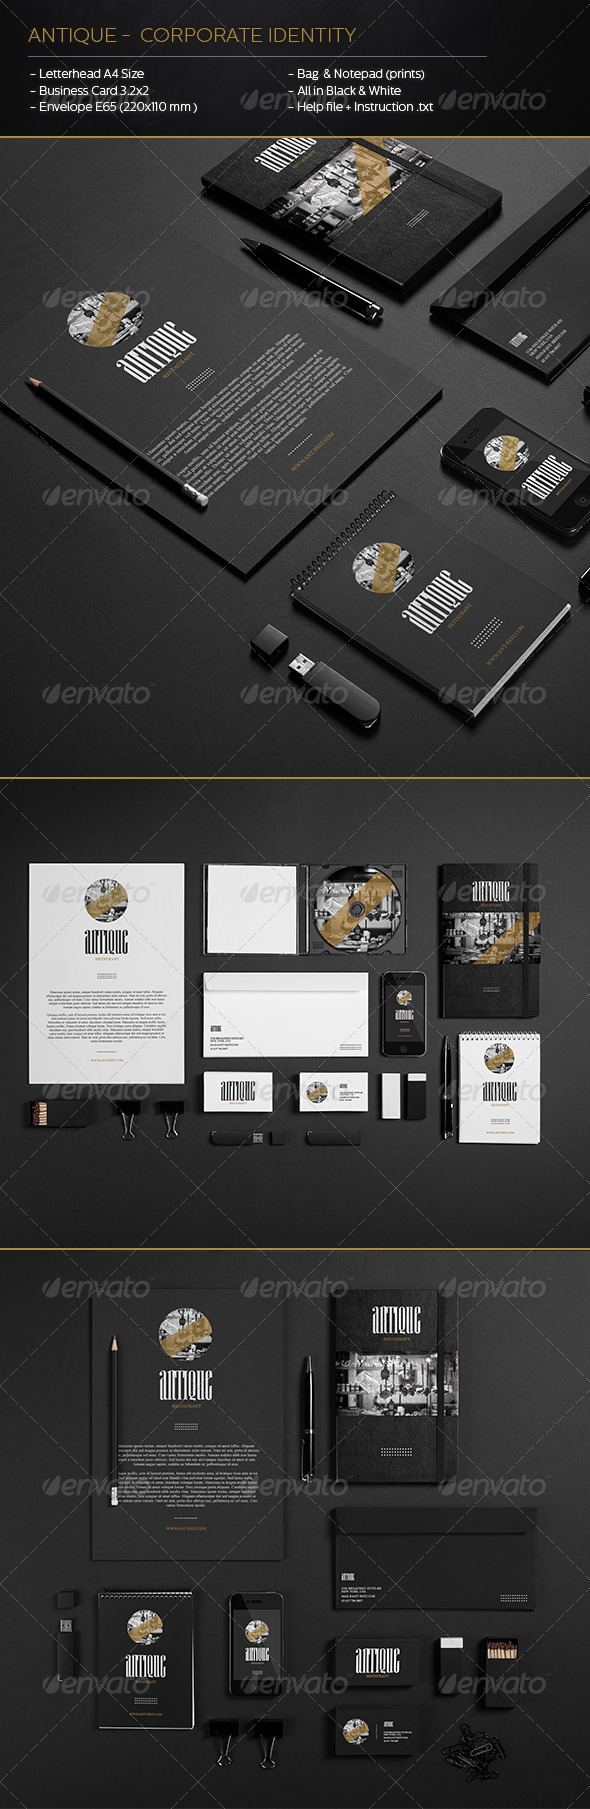 GraphicRiver Antique Corporate Identity 6049490